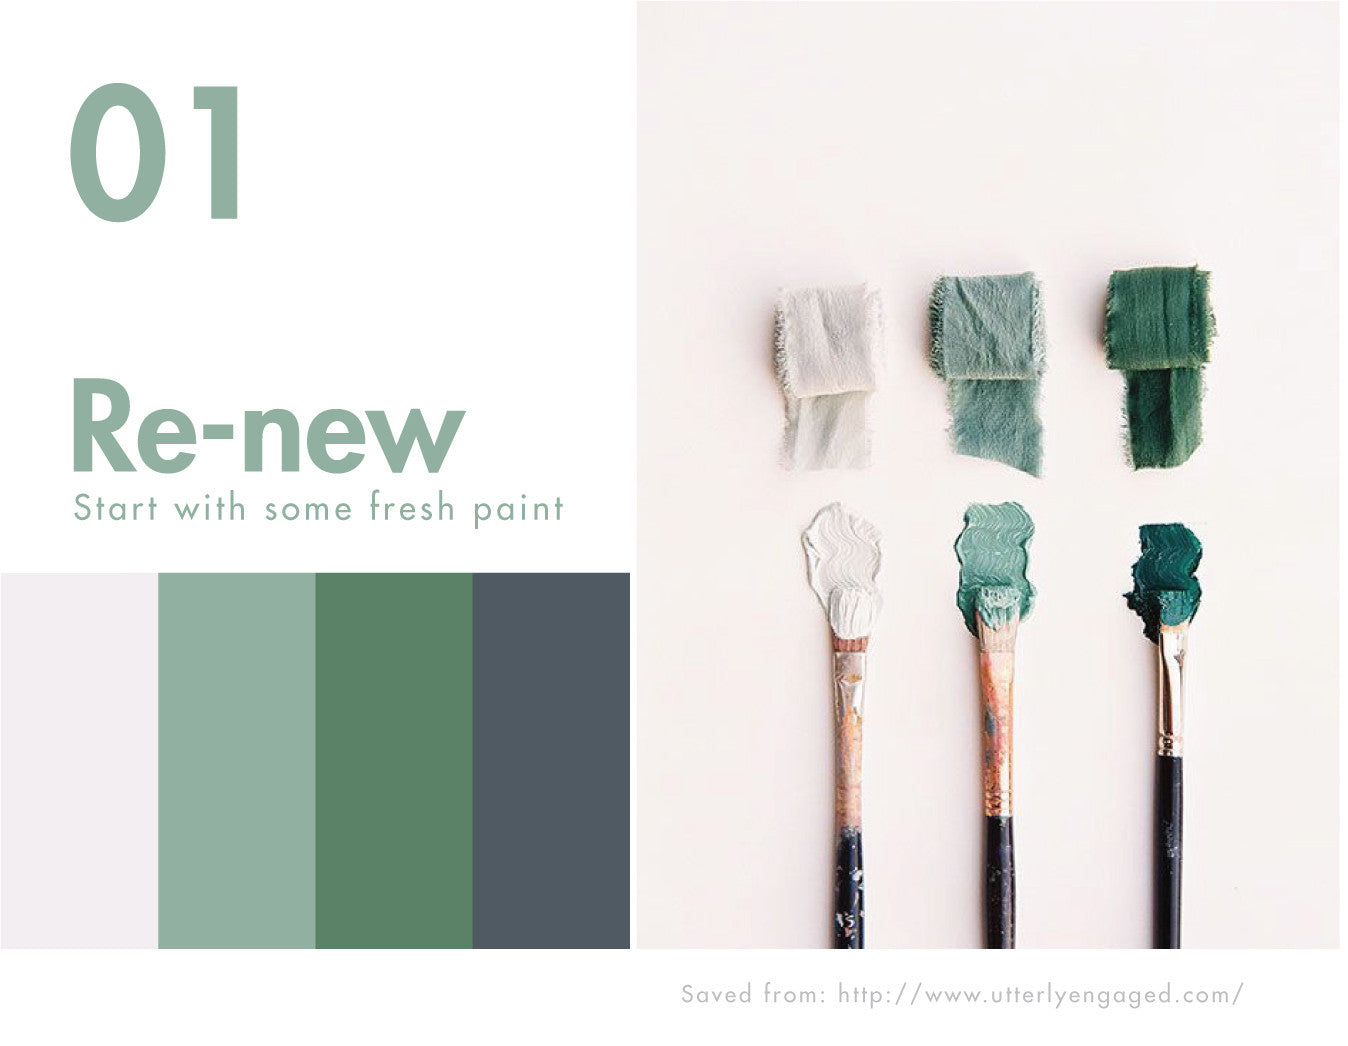 renew tips/fresh-paint/beinspired/newness/blog